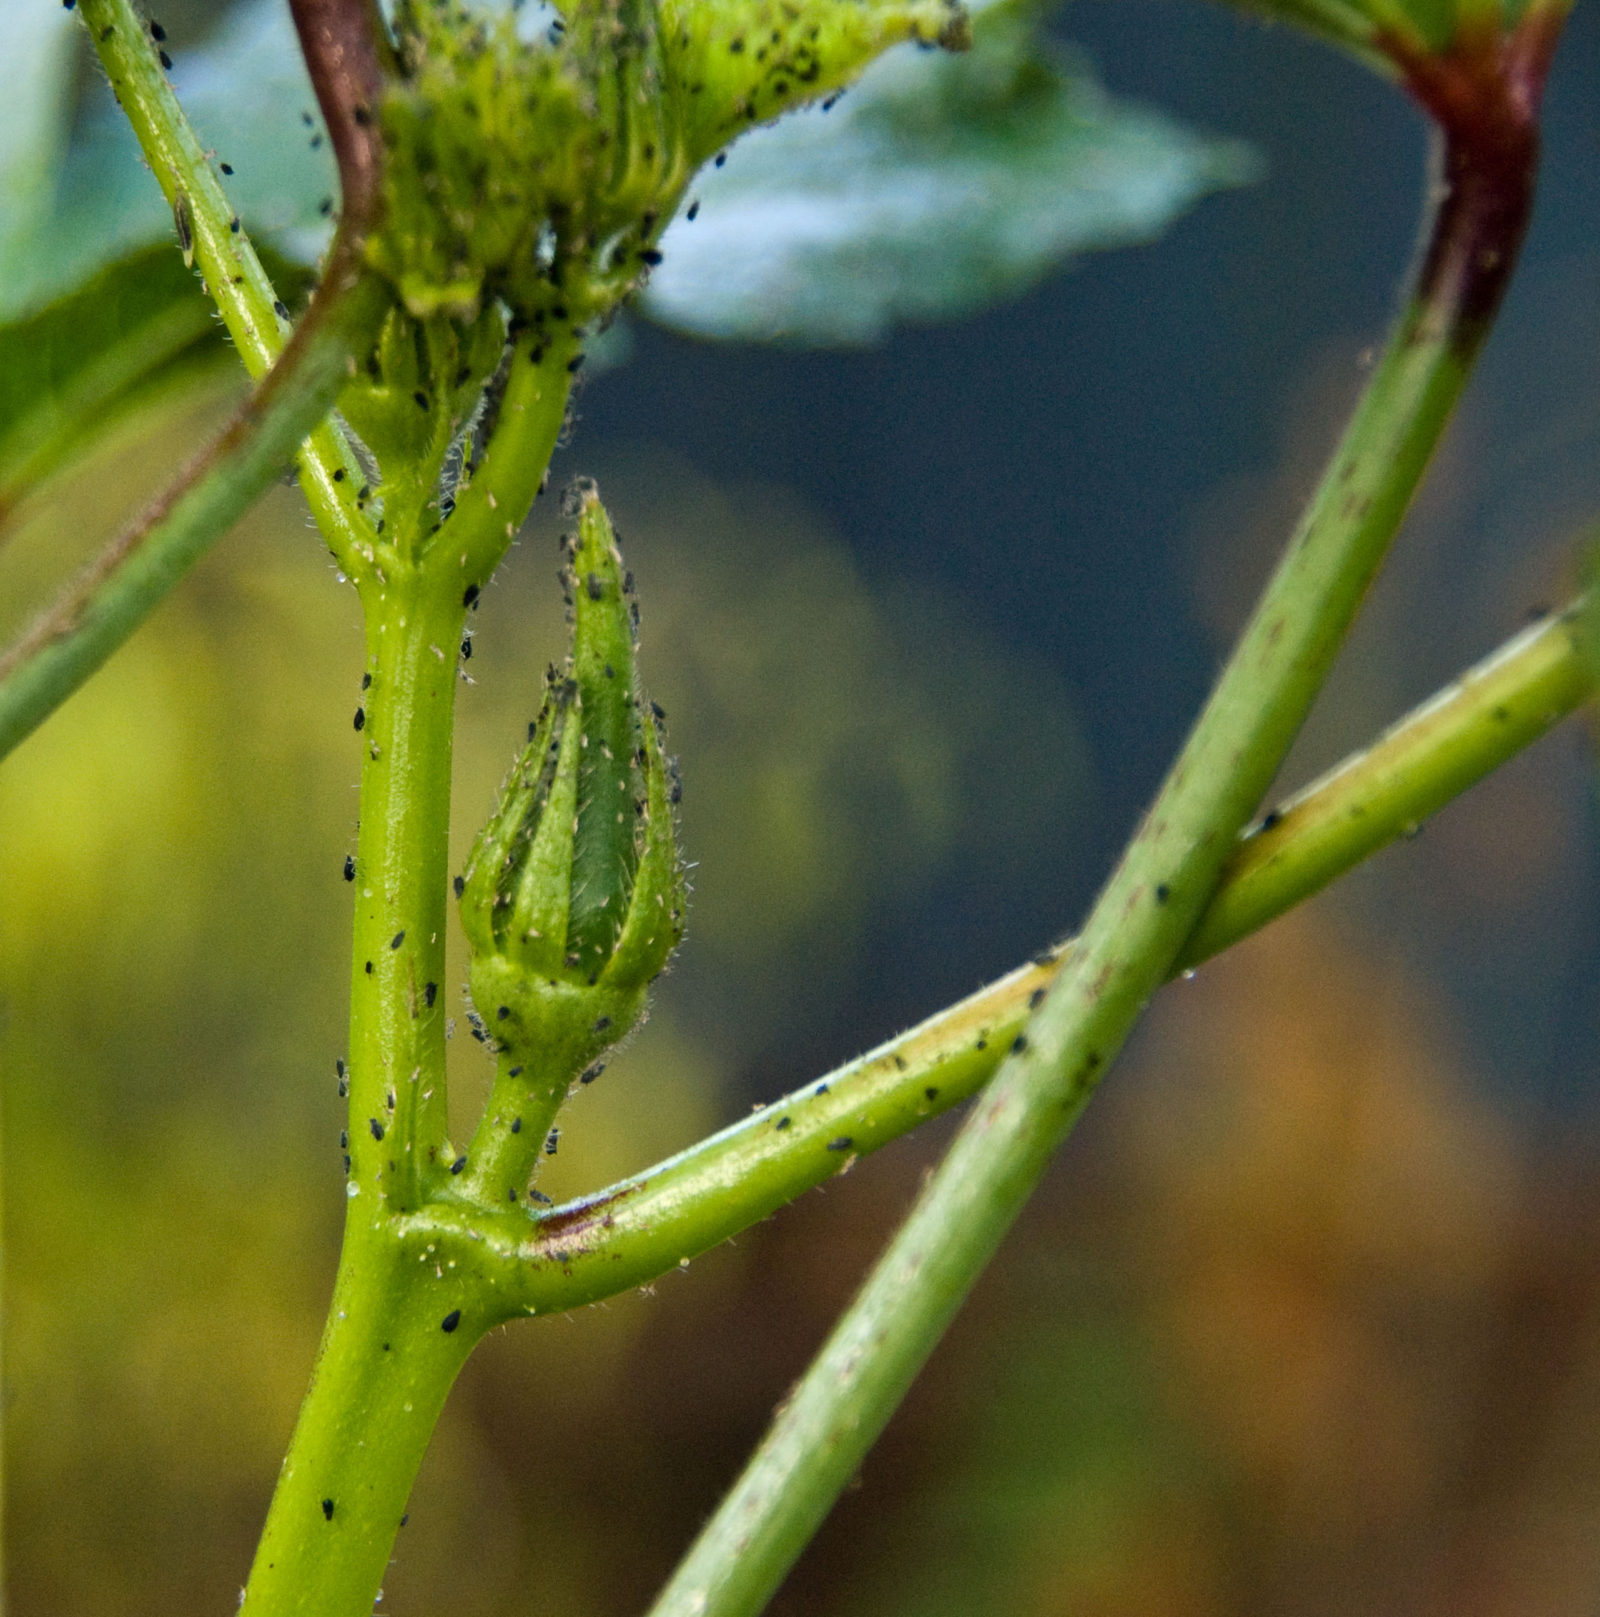 Black Pests On Okra Plant